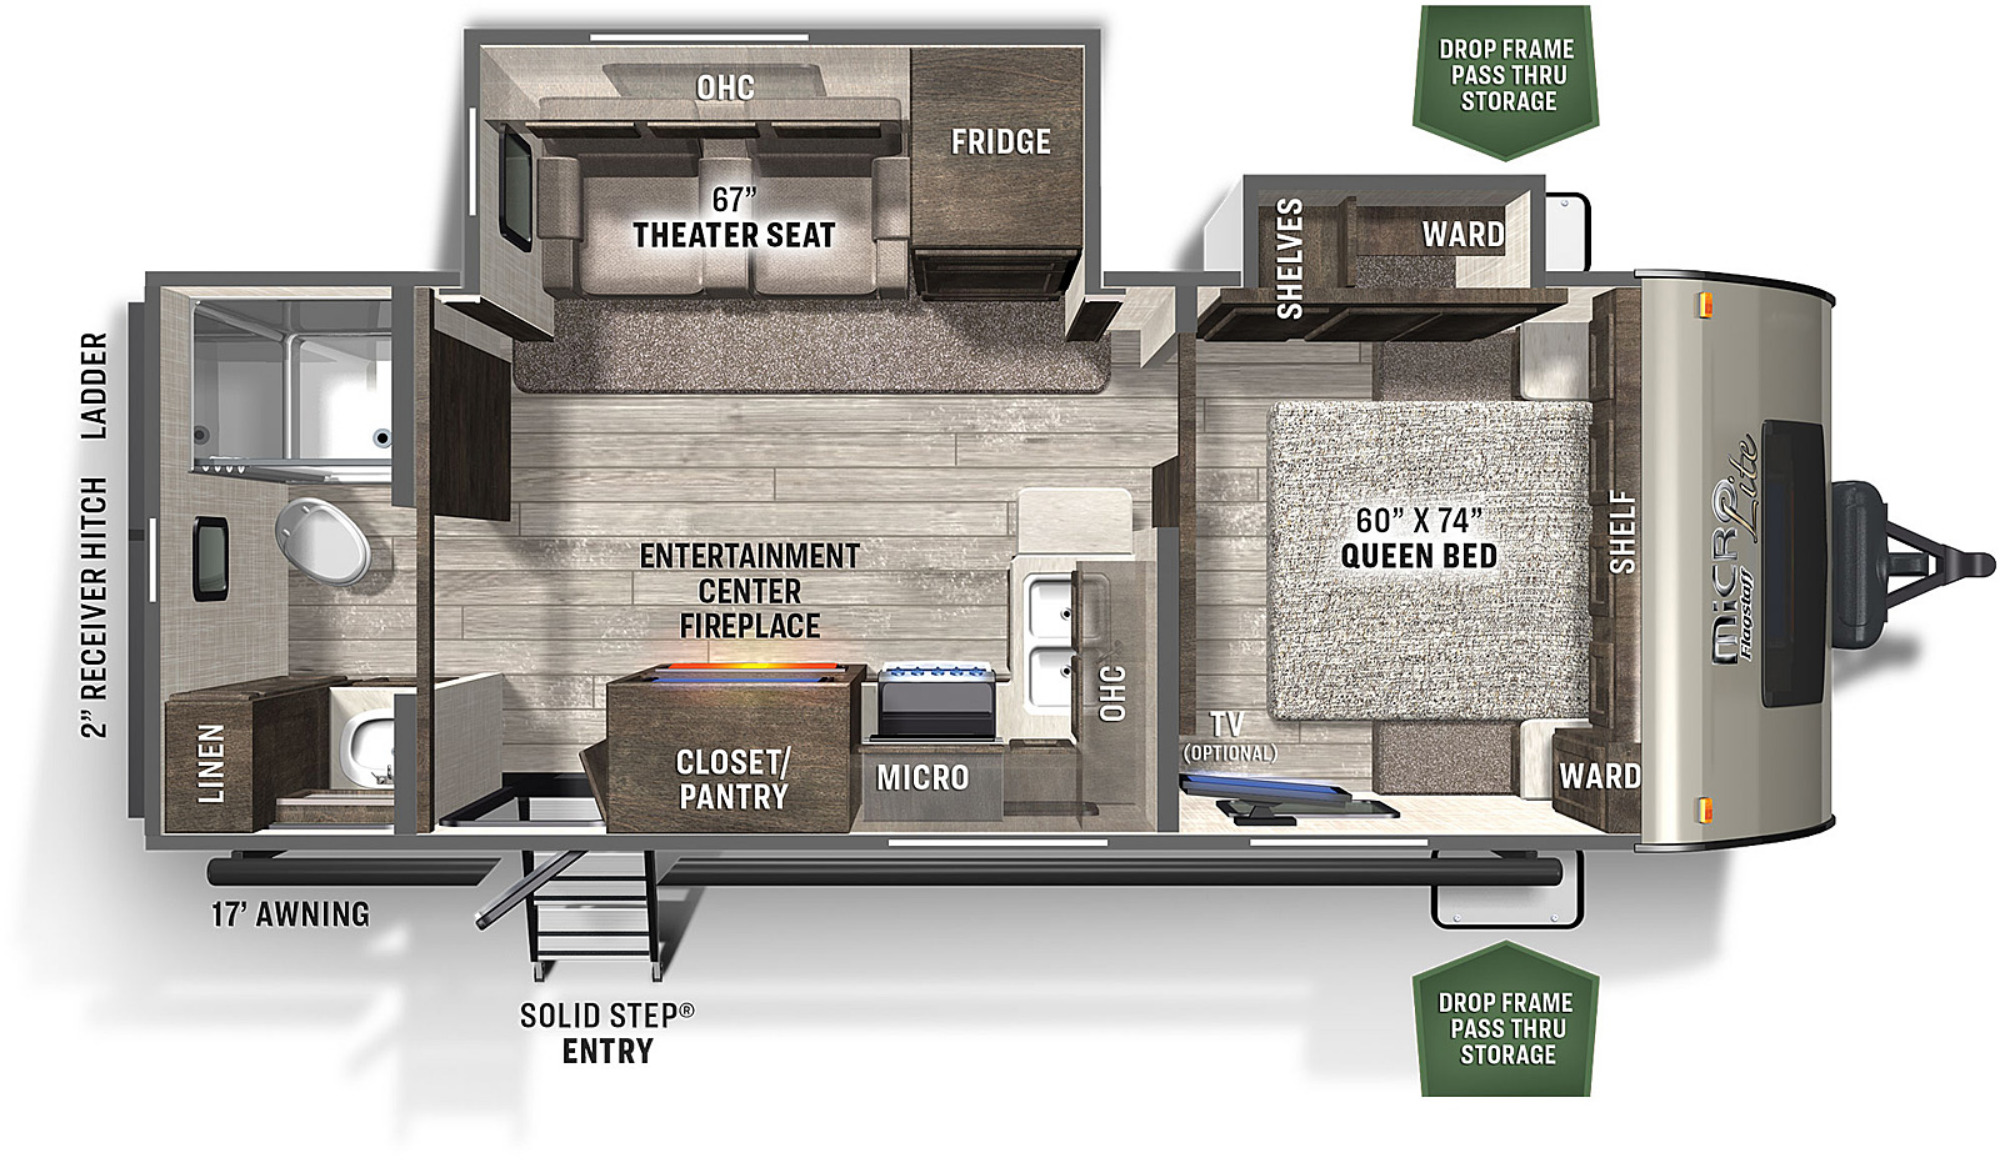 View Floor Plan for 2021 FOREST RIVER FLAGSTAFF MICRO LITE 25FBLS